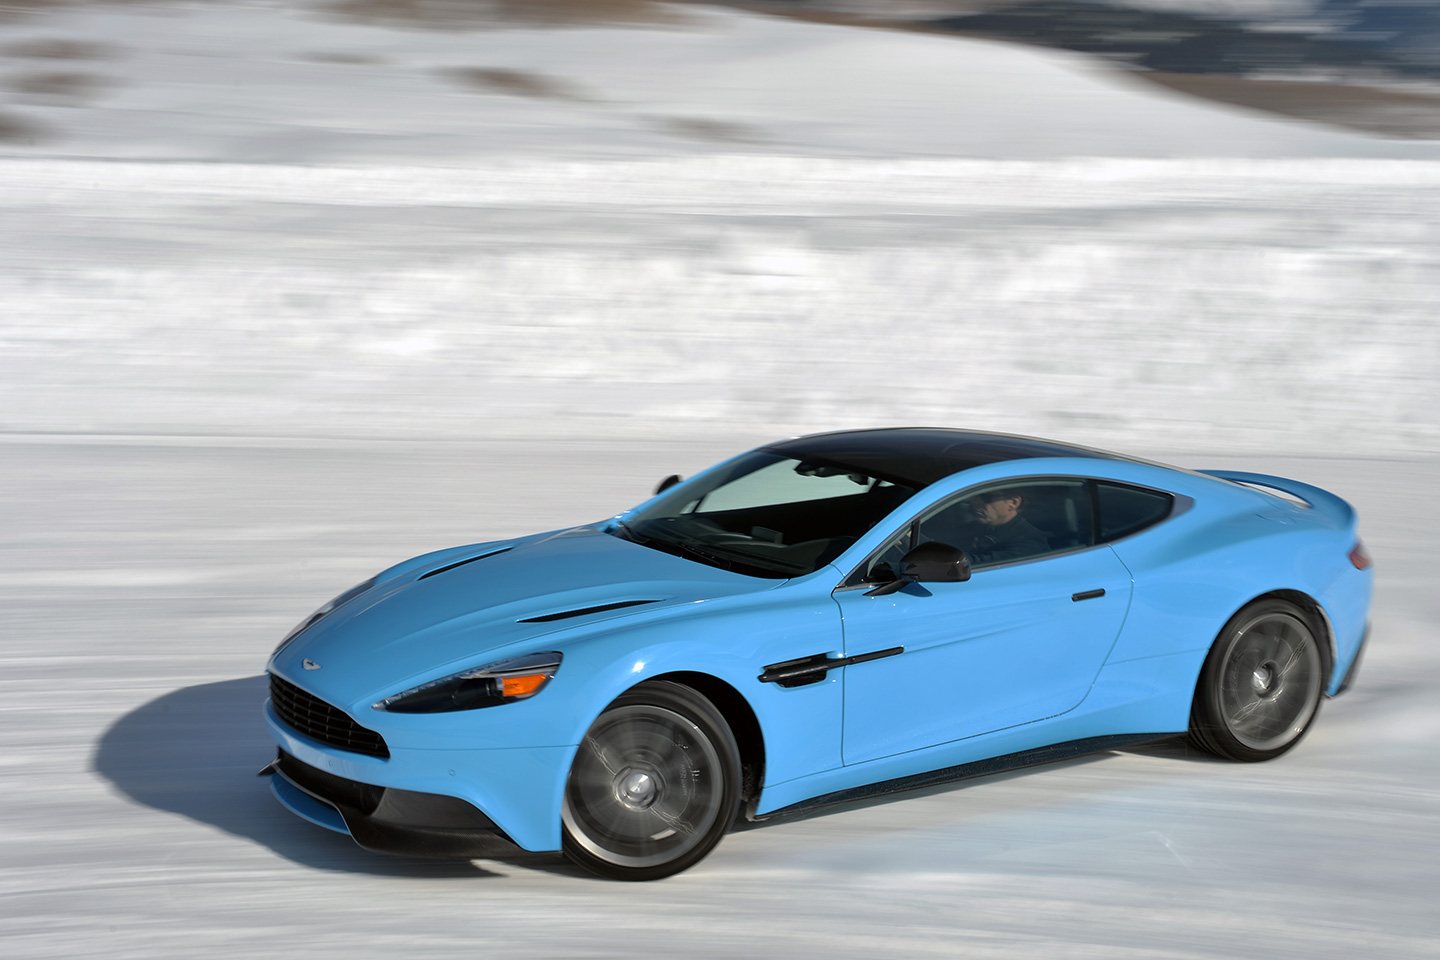 Blue Aston Martin in action during New Zealand on Ice event